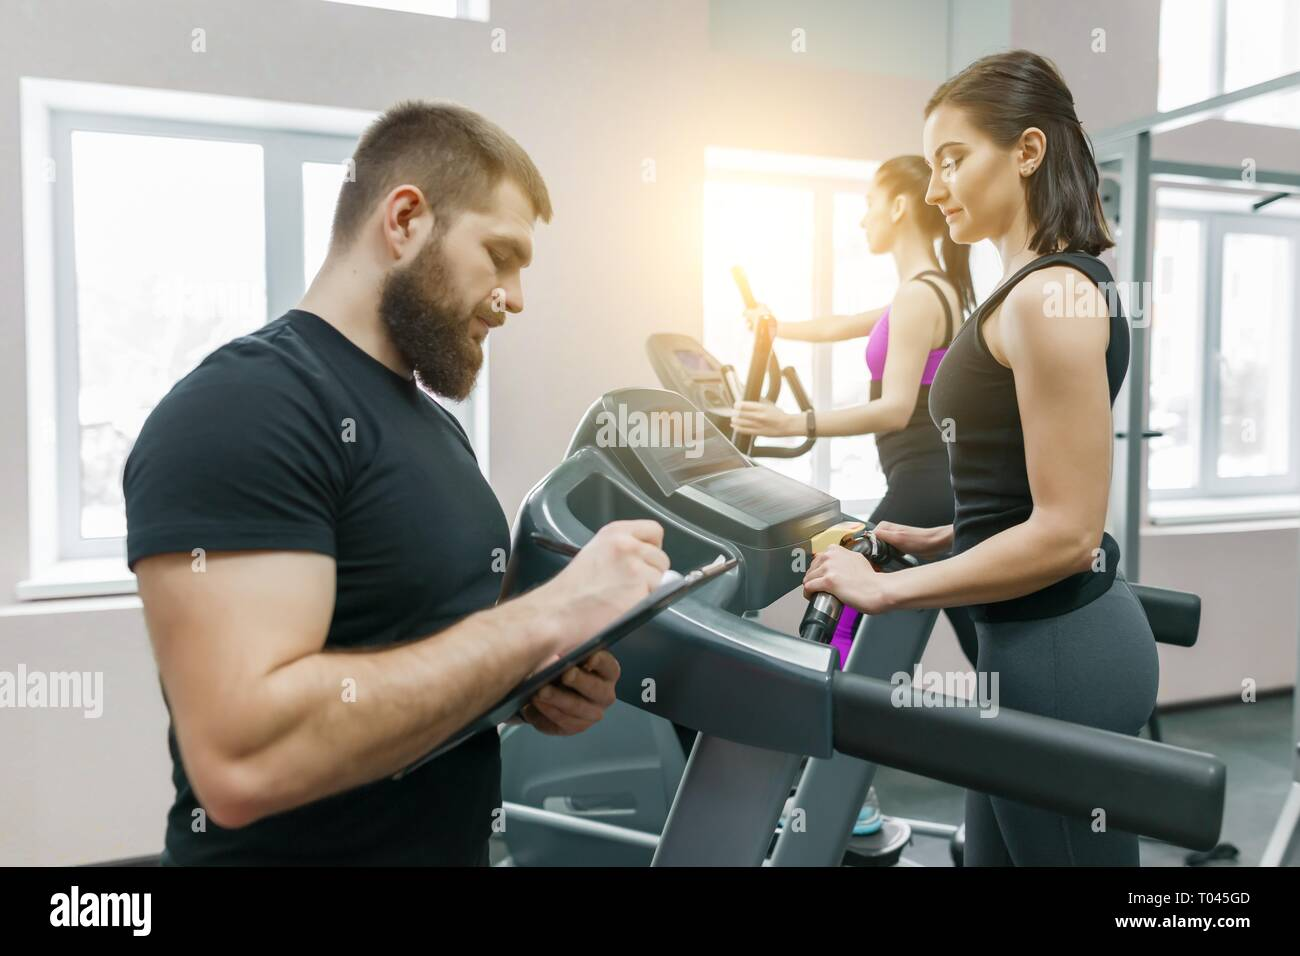 Young smiling fitness women with personal trainer an adult athletic man on treadmill in the gym. Sport, teamwork, training, healthy lifestyle concept. - Stock Image